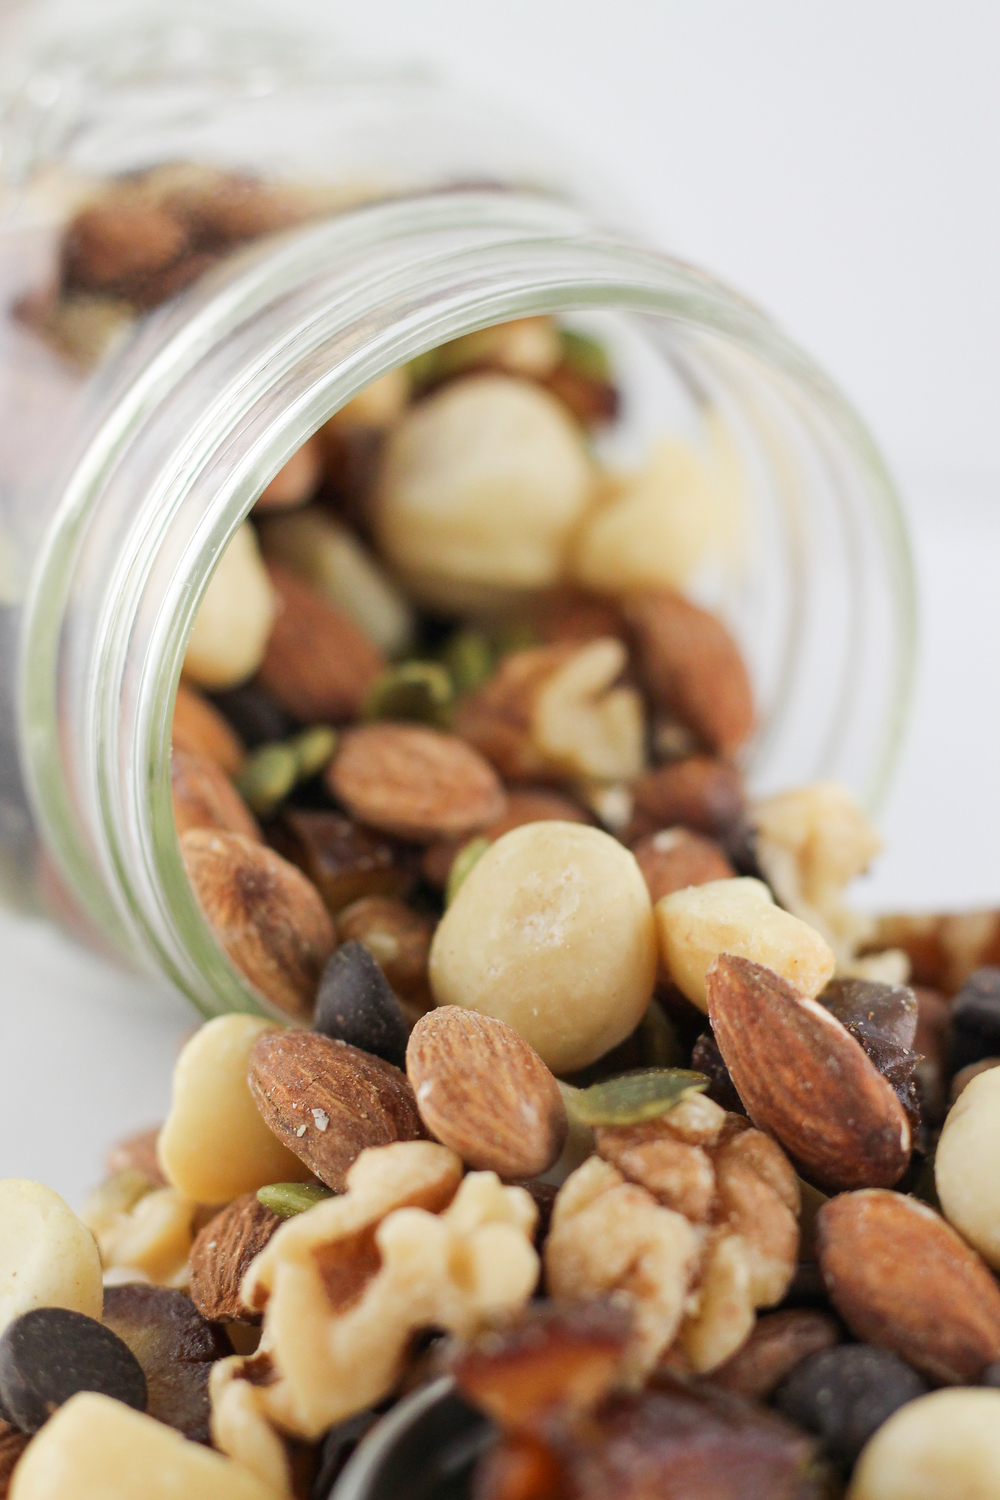 Paleo Trail mix with dates, almonds, walnuts, pumpkin seeds and dark chocolate chips